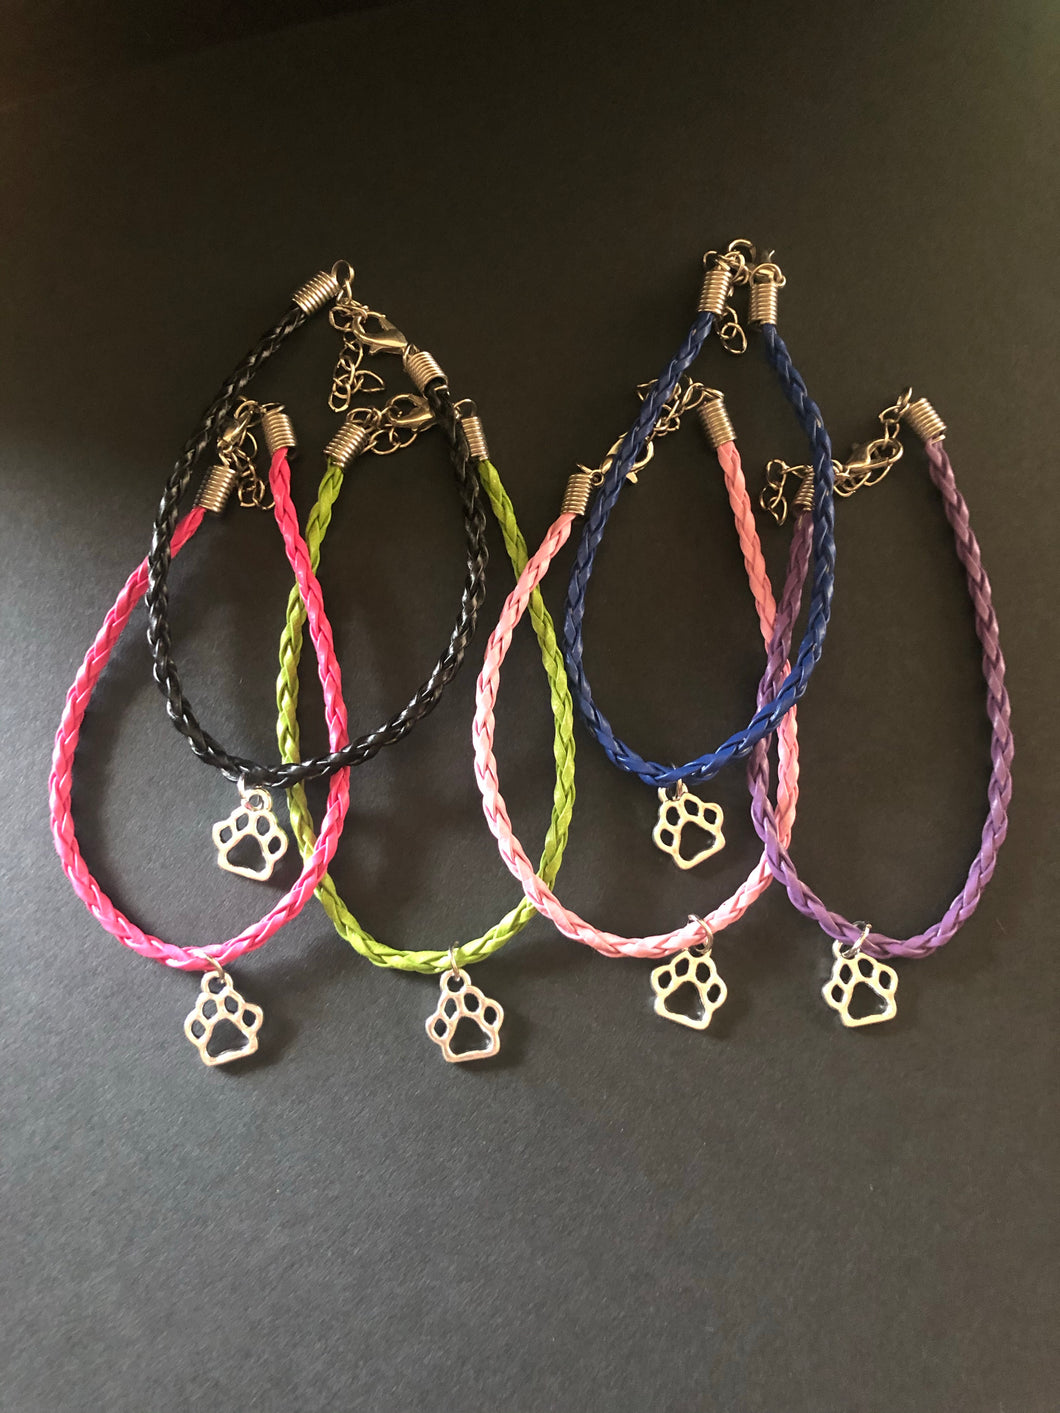 Match your Pup Paw Print Bracelet